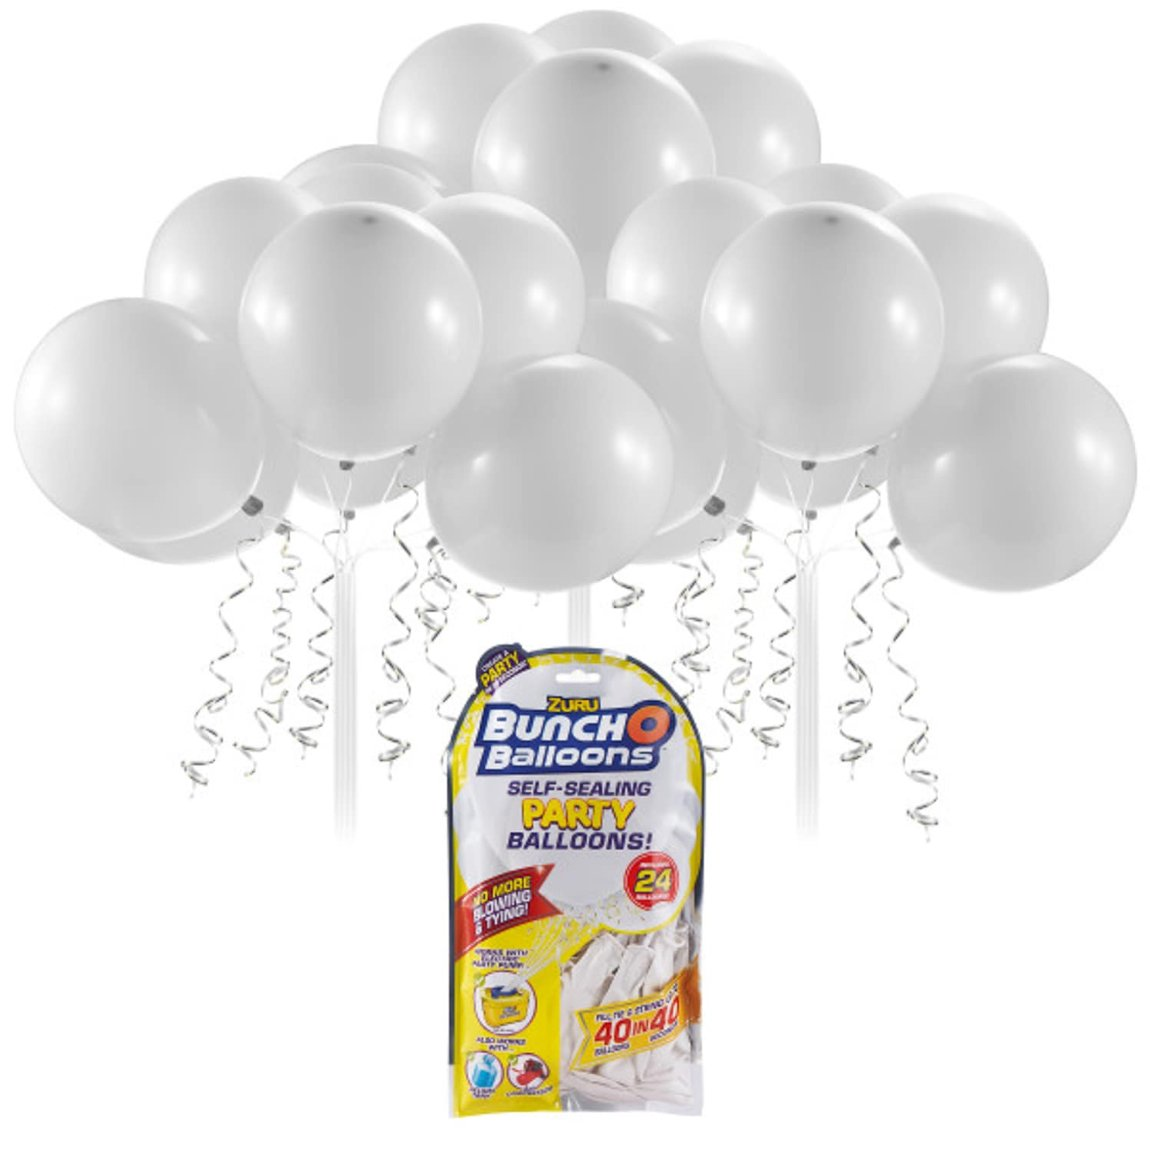 Zuru Self Sealing Party Balloons 24pk - White